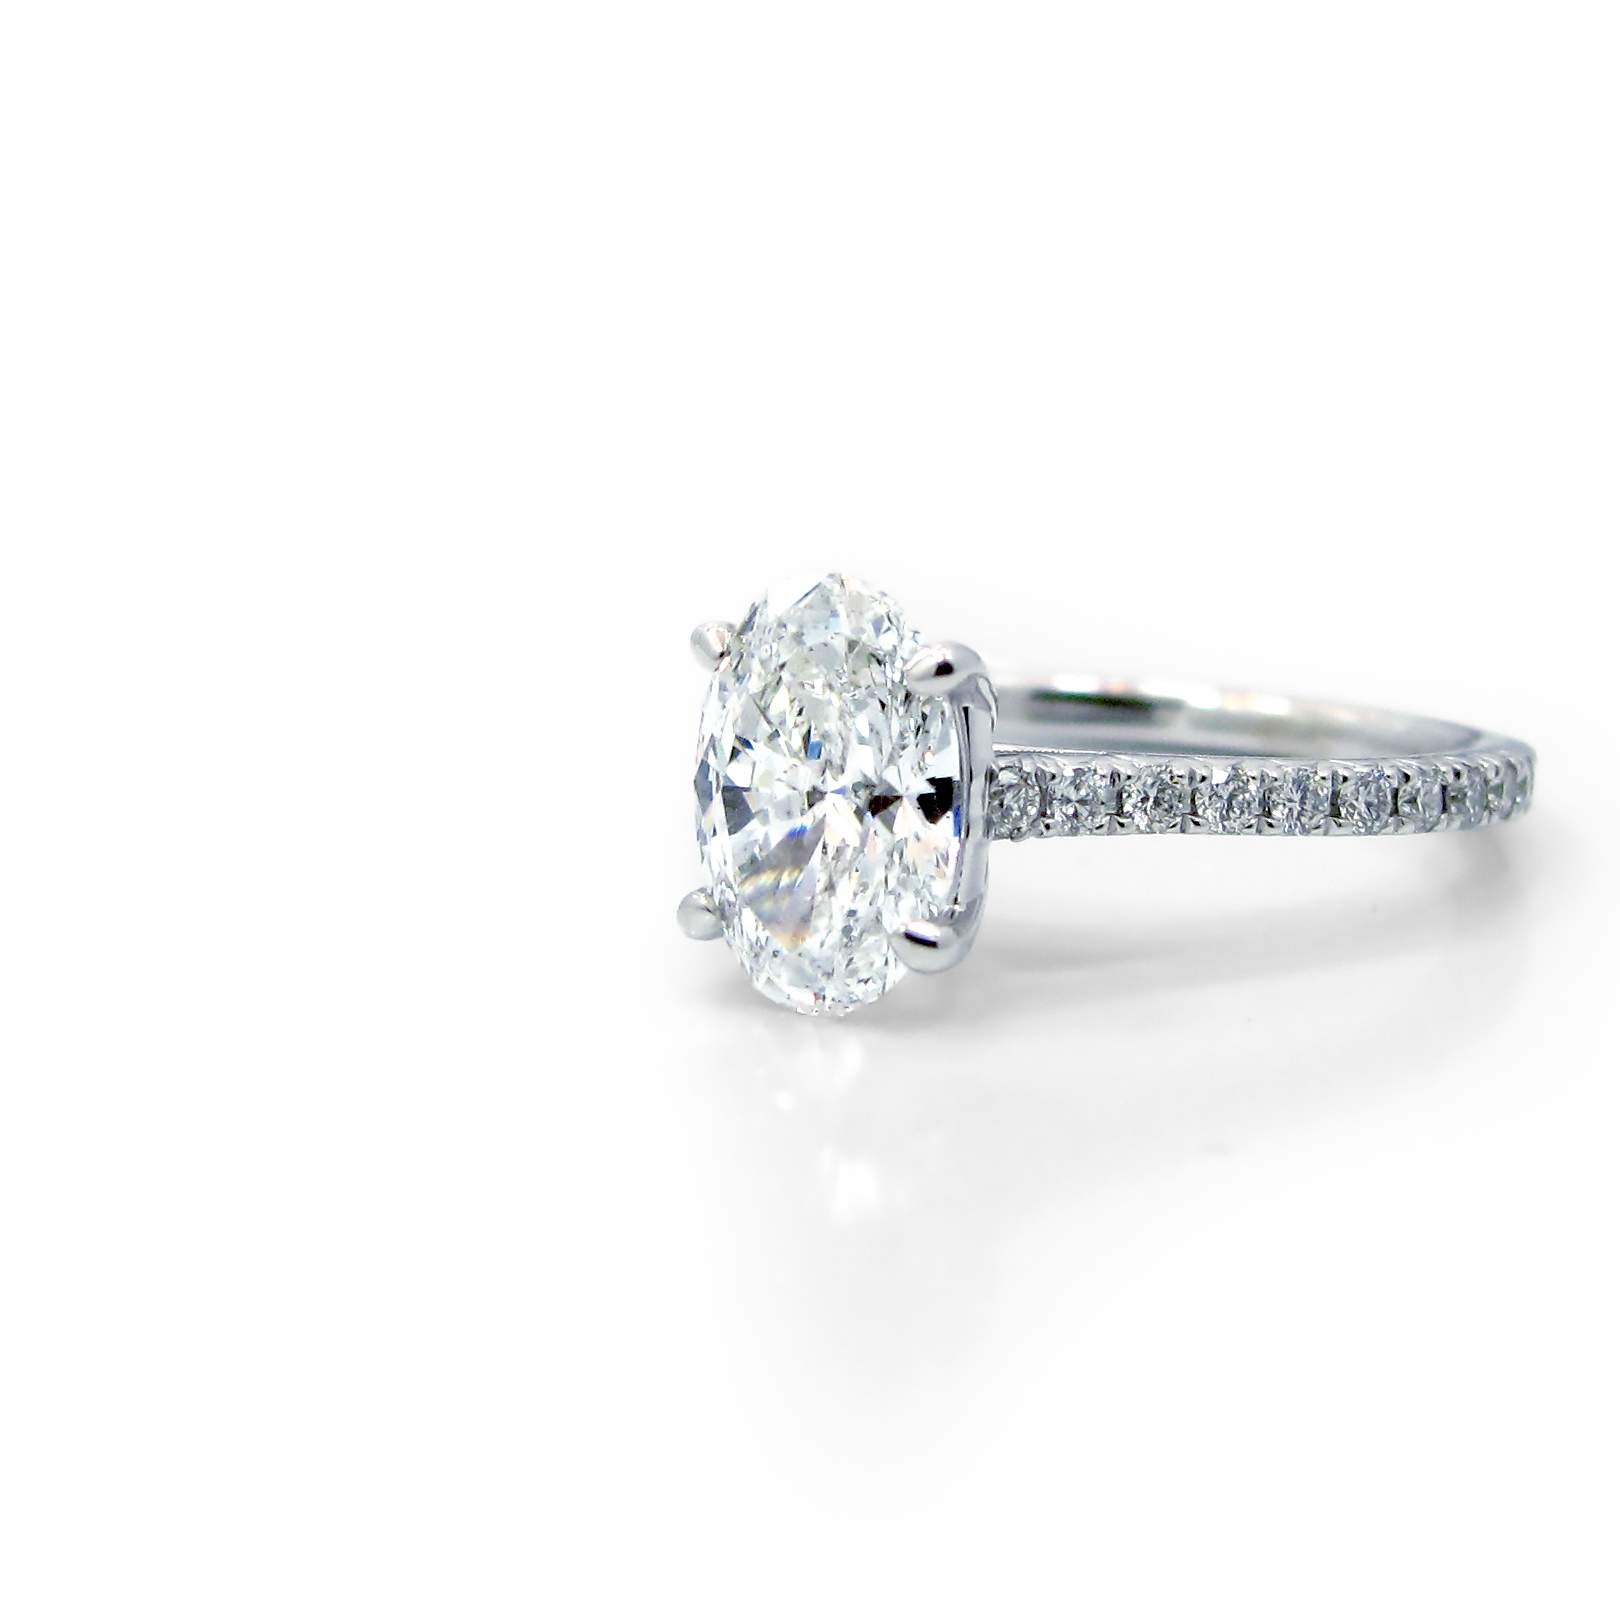 diamonds with of band rings carat wedding certified carats gia diamond solitaire on product